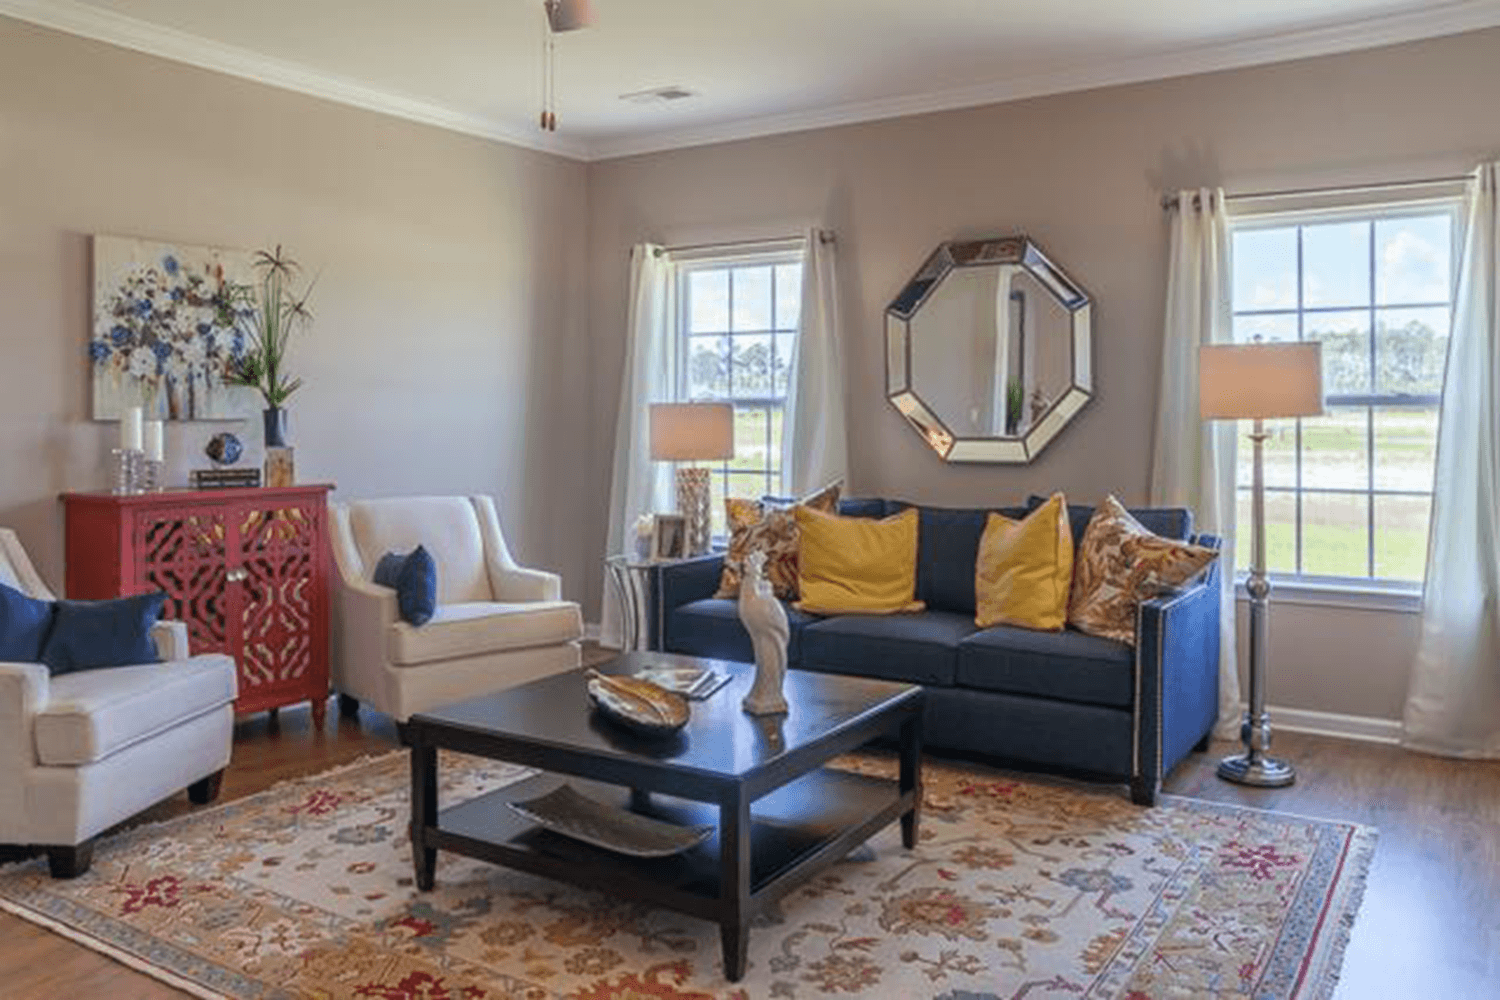 Living Area featured in The Savannah (Build on your lot) By Lamar Smith Homes in Savannah, GA